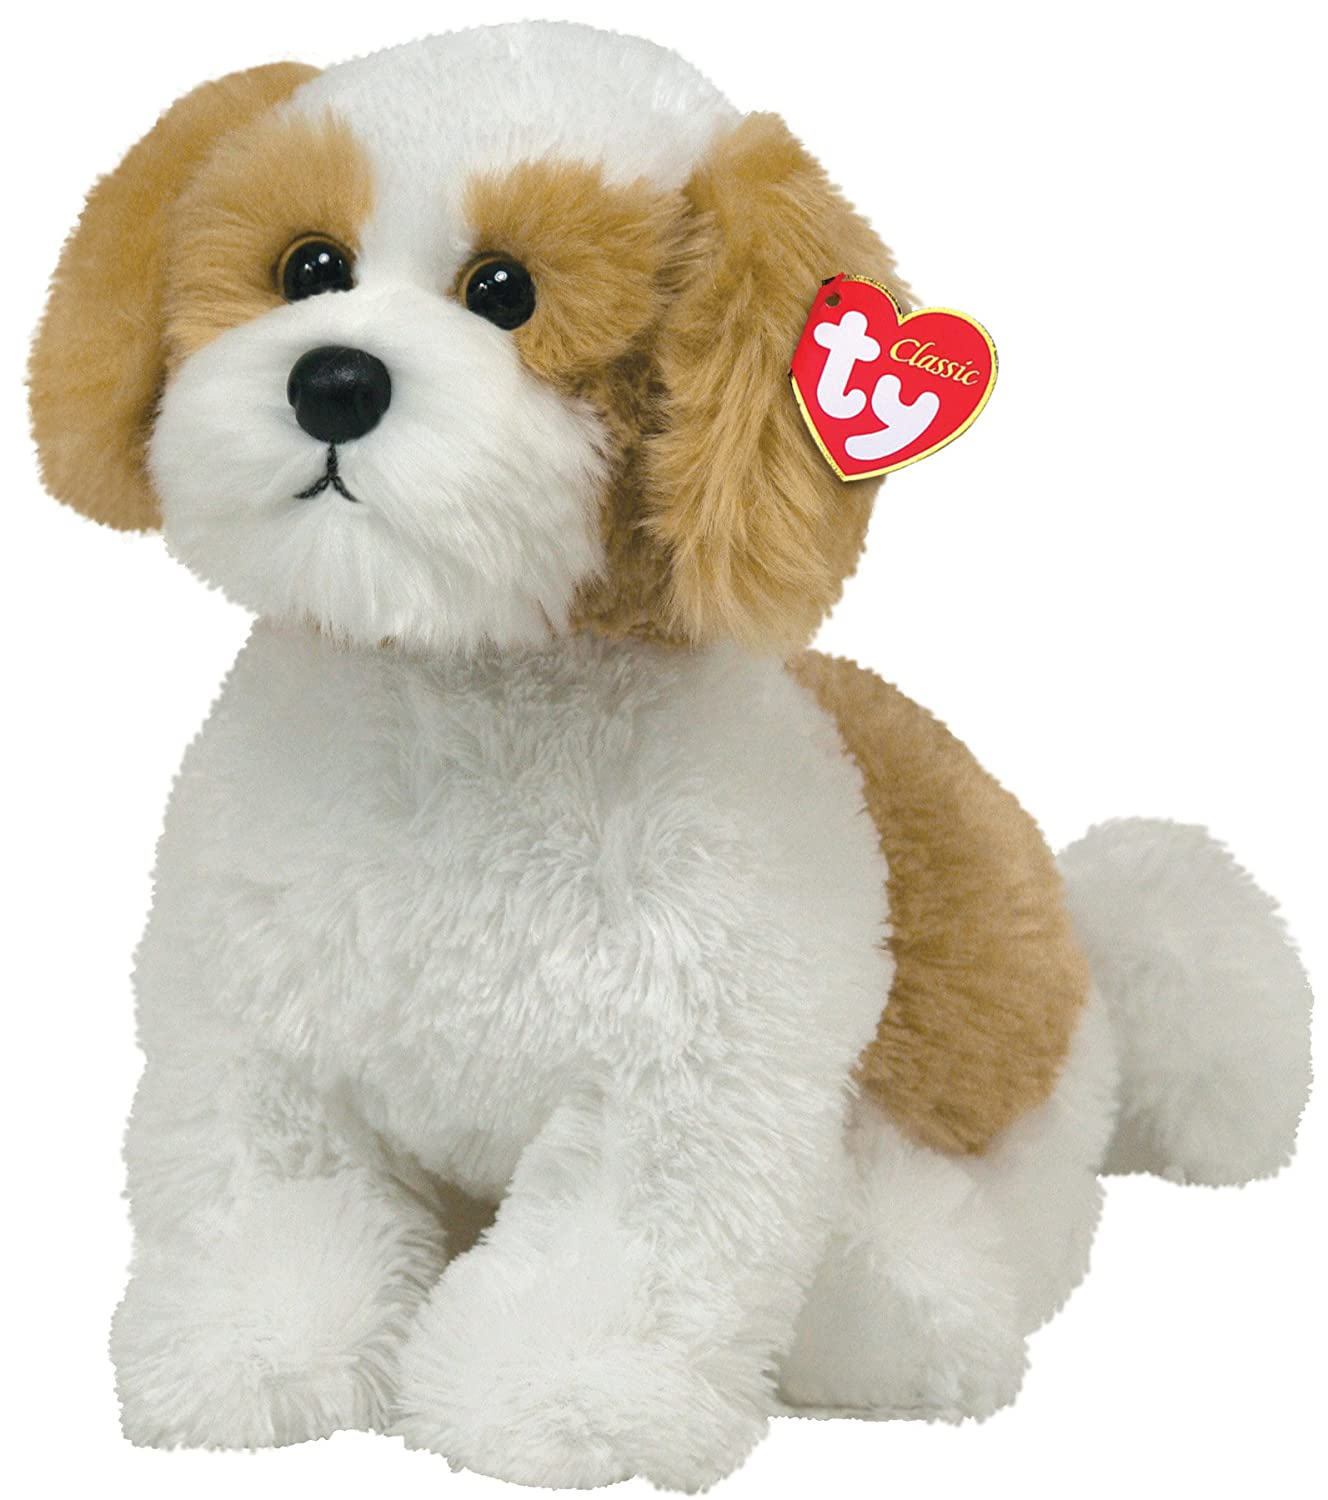 TY Classic Barley Beige dog with White